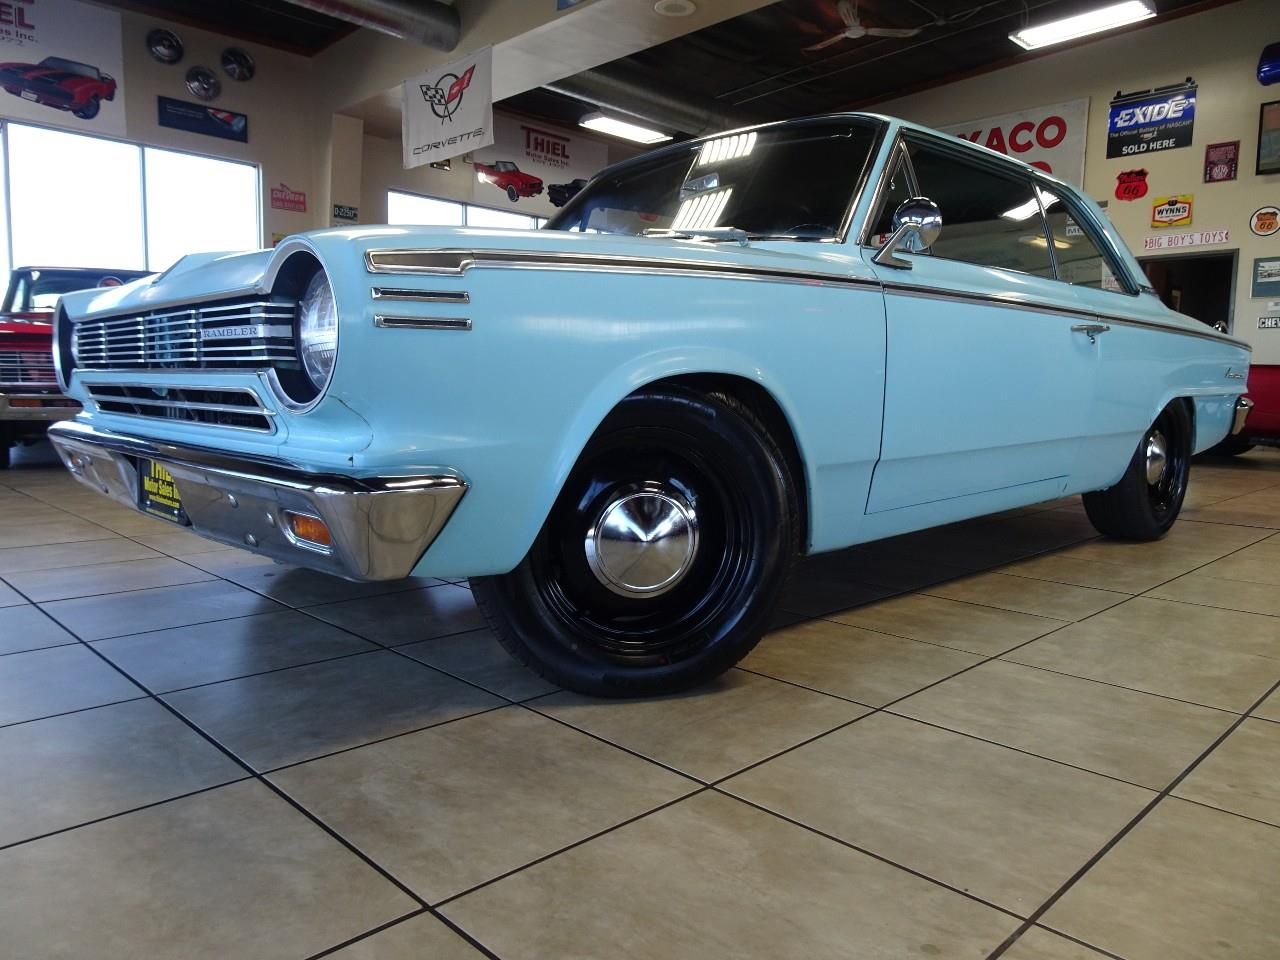 Large Picture of 1965 Rambler American located in De Witt Iowa - $22,997.00 - P3YN